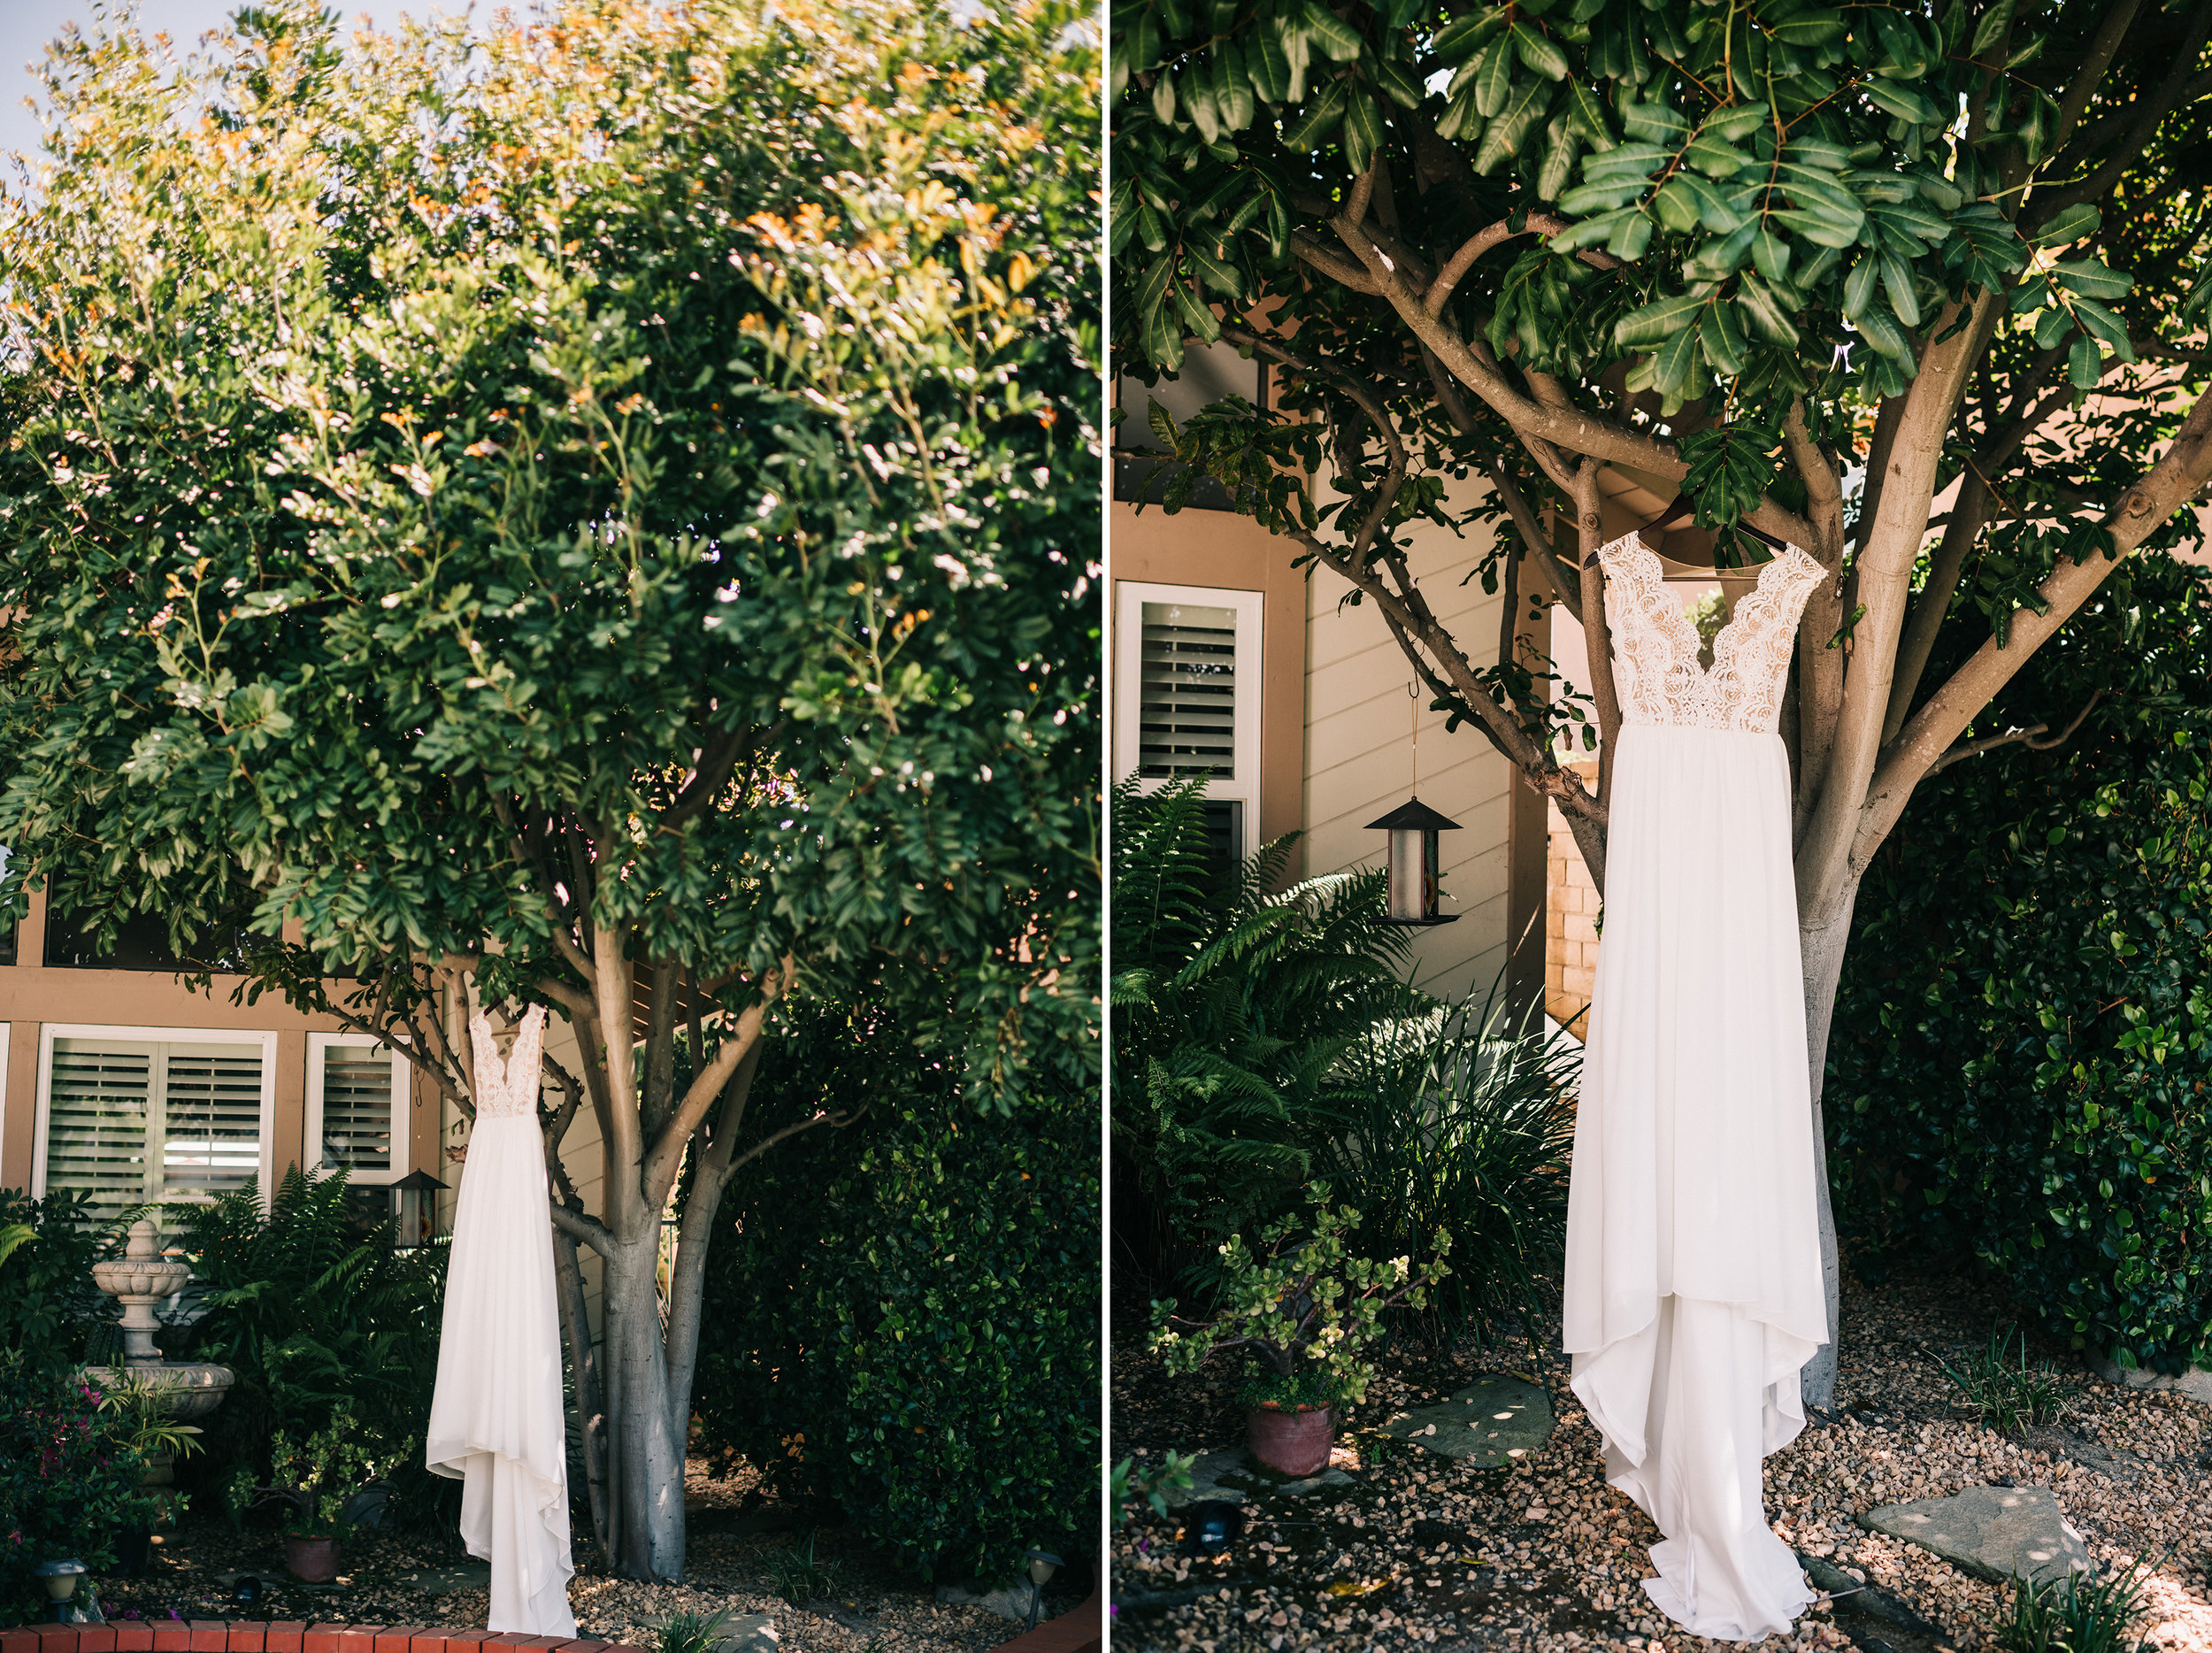 southern california laguna beach salt creek beach los angeles socal boho bay area akland san francisco engagement wedding nontraditional fun creative eclectic photographer magic-36.jpg